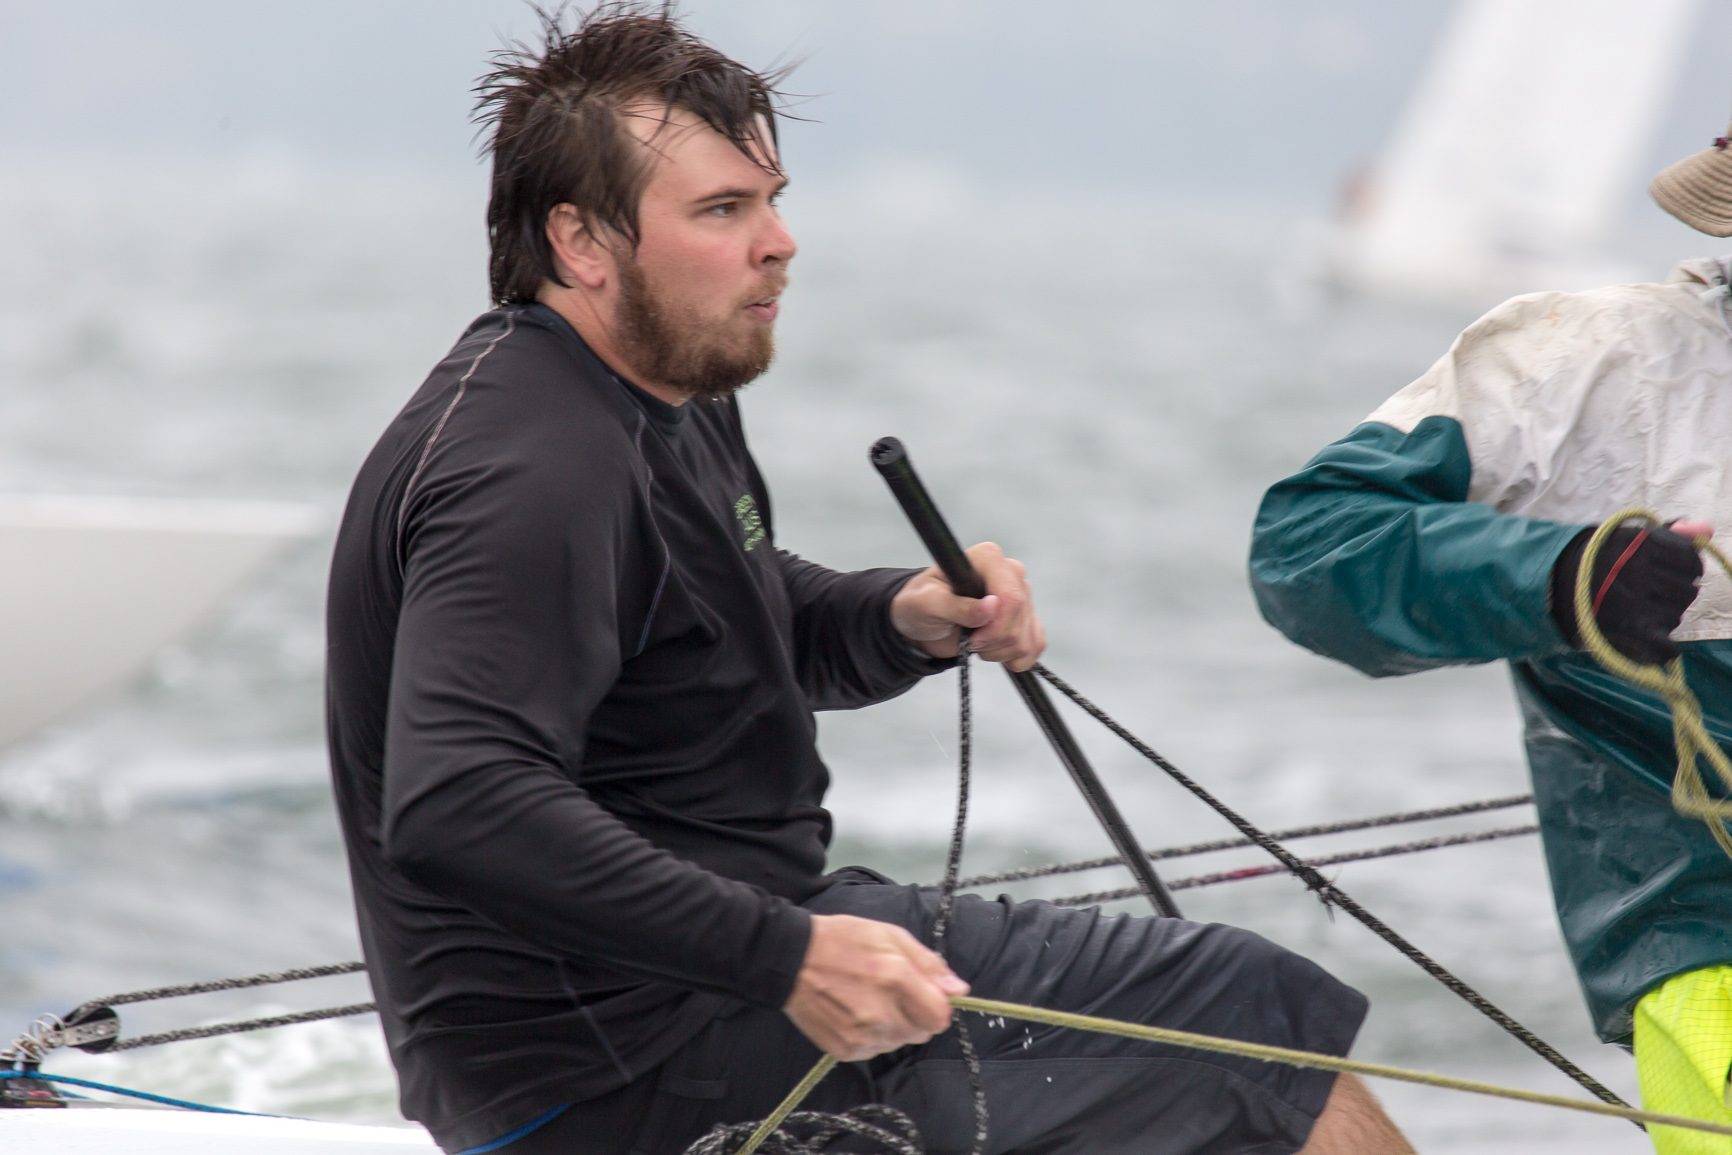 Local Gosford sailor, Luke Birch, on Greenback